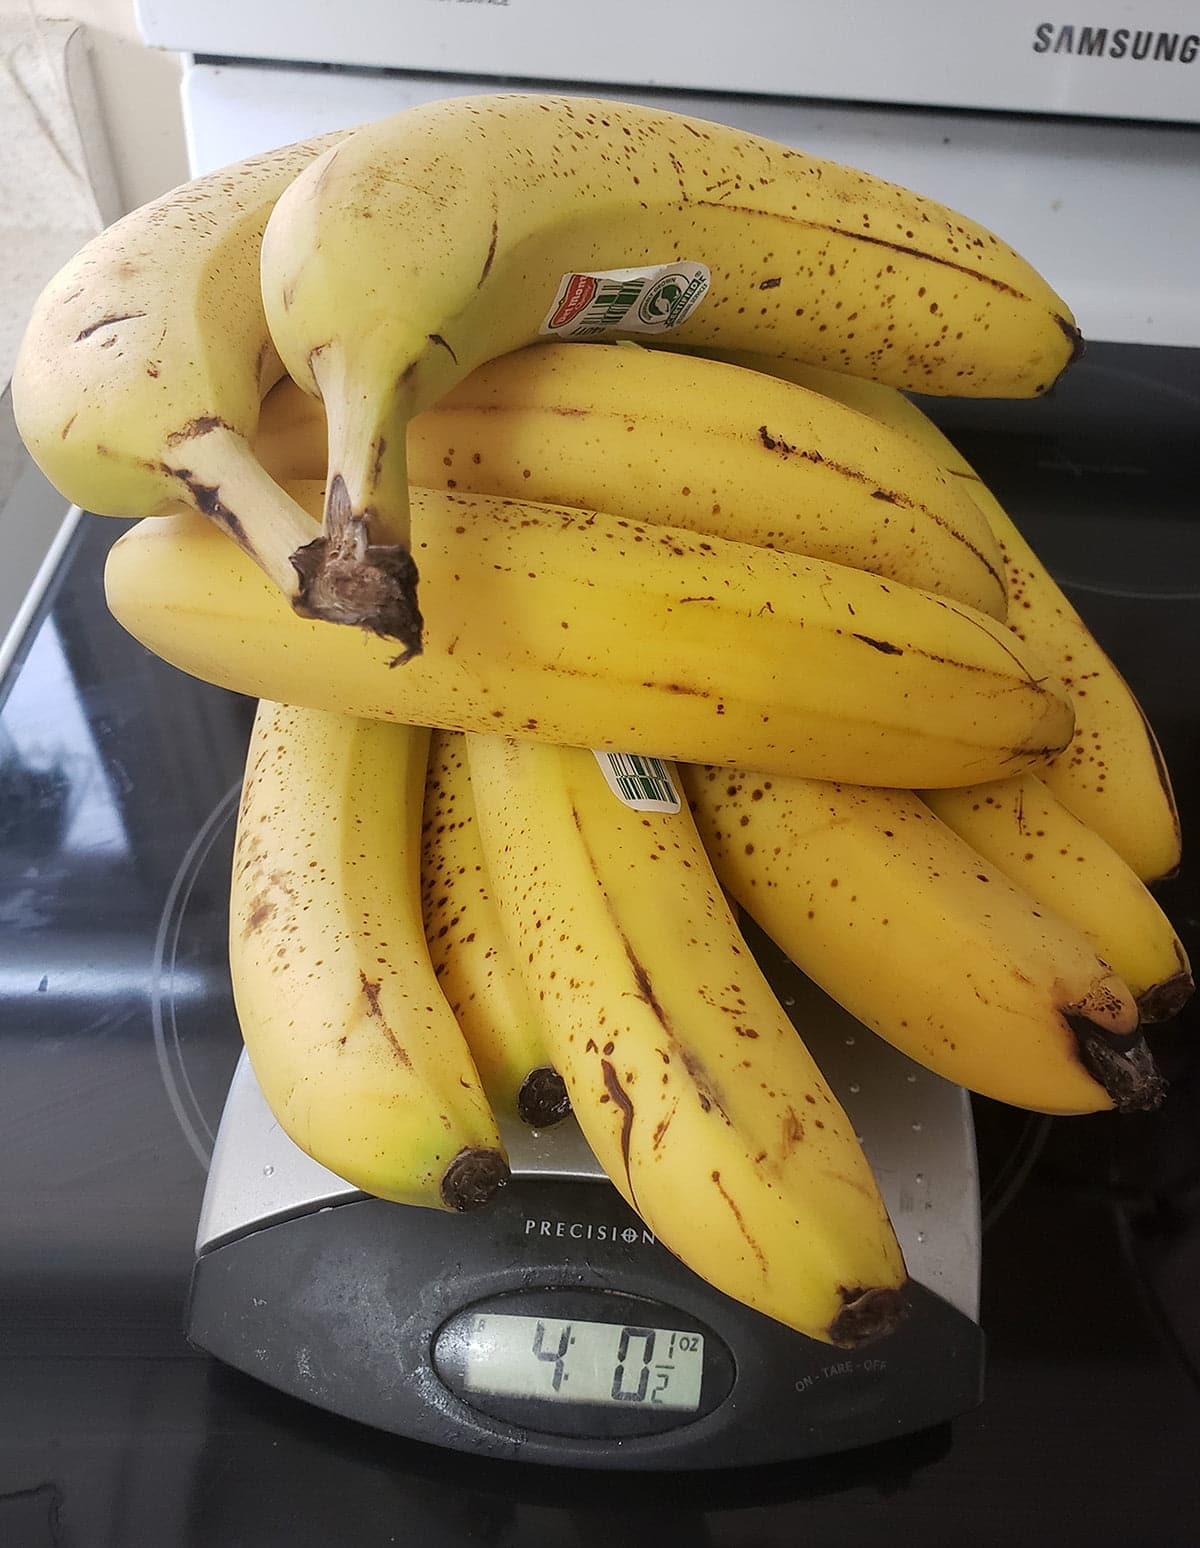 A pile of fresh bananas rests on top of a scale.